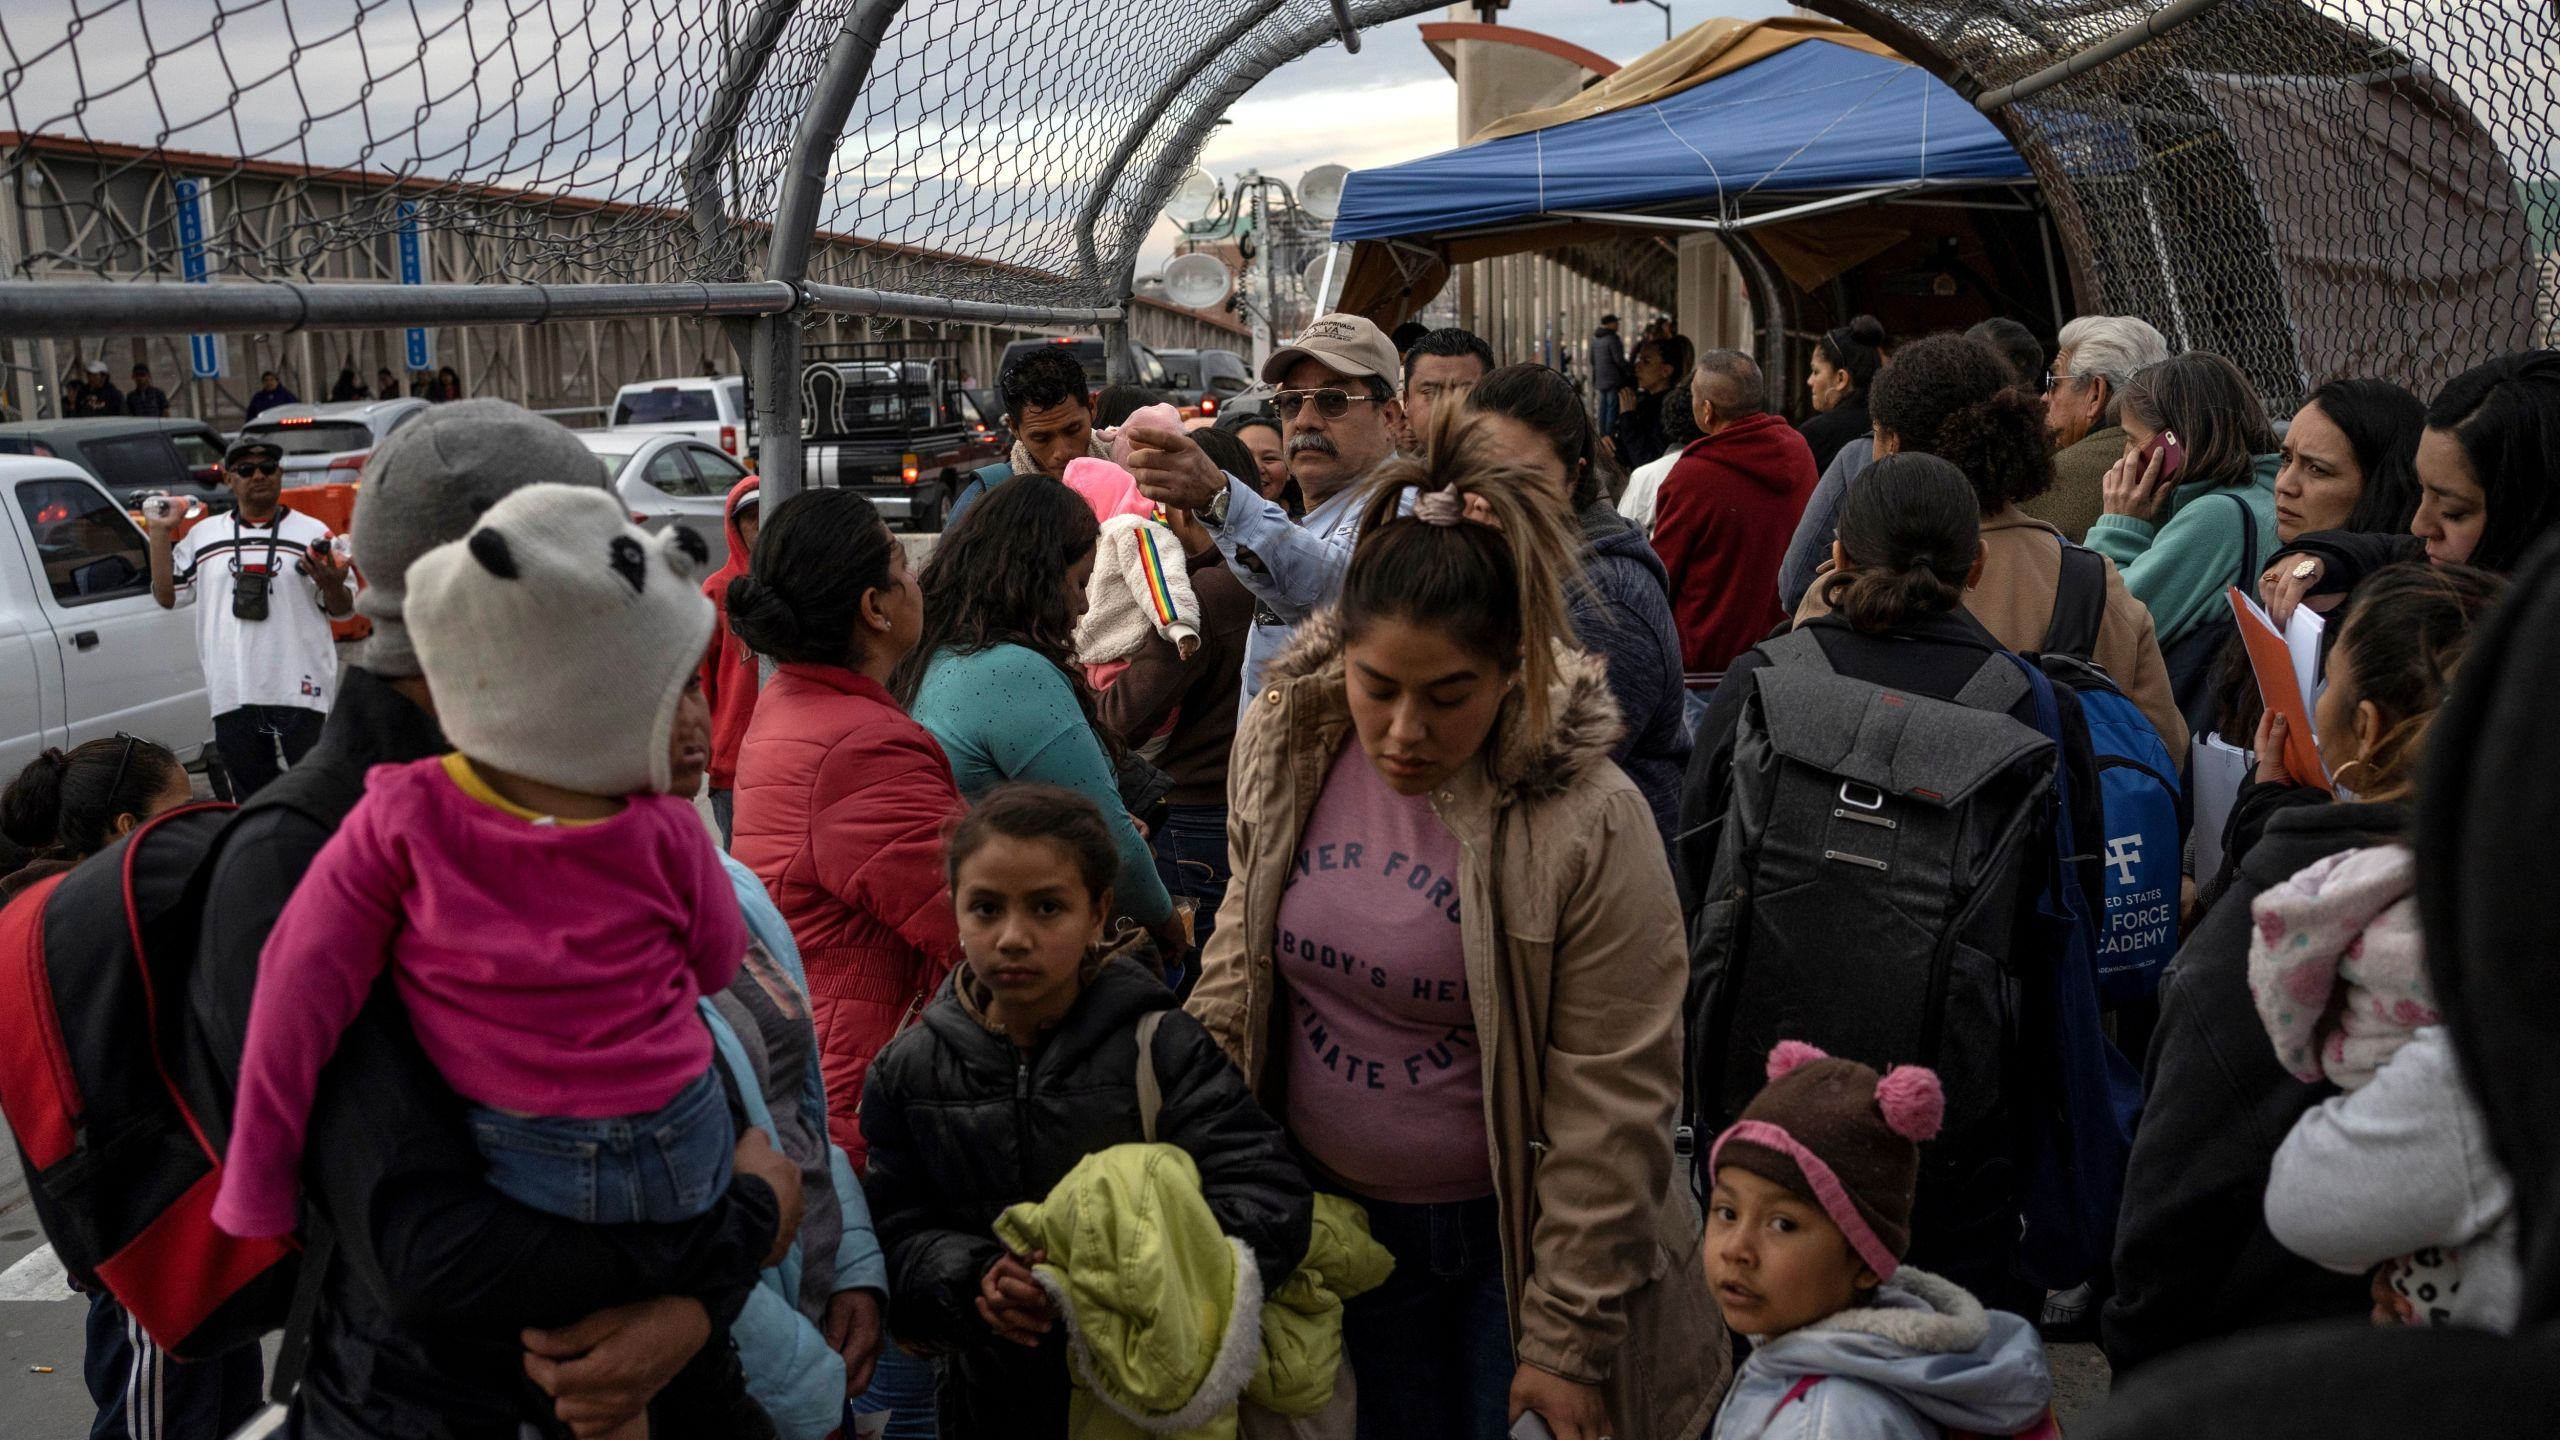 Migrants part of the Migrant Protection Protocols program are led back down Paso del Norte International Bridge after not being allowed to cross into the U.S. on February 28, 2020, in Ciudad Juárez. (PAUL RATJE/AFP via Getty Images)